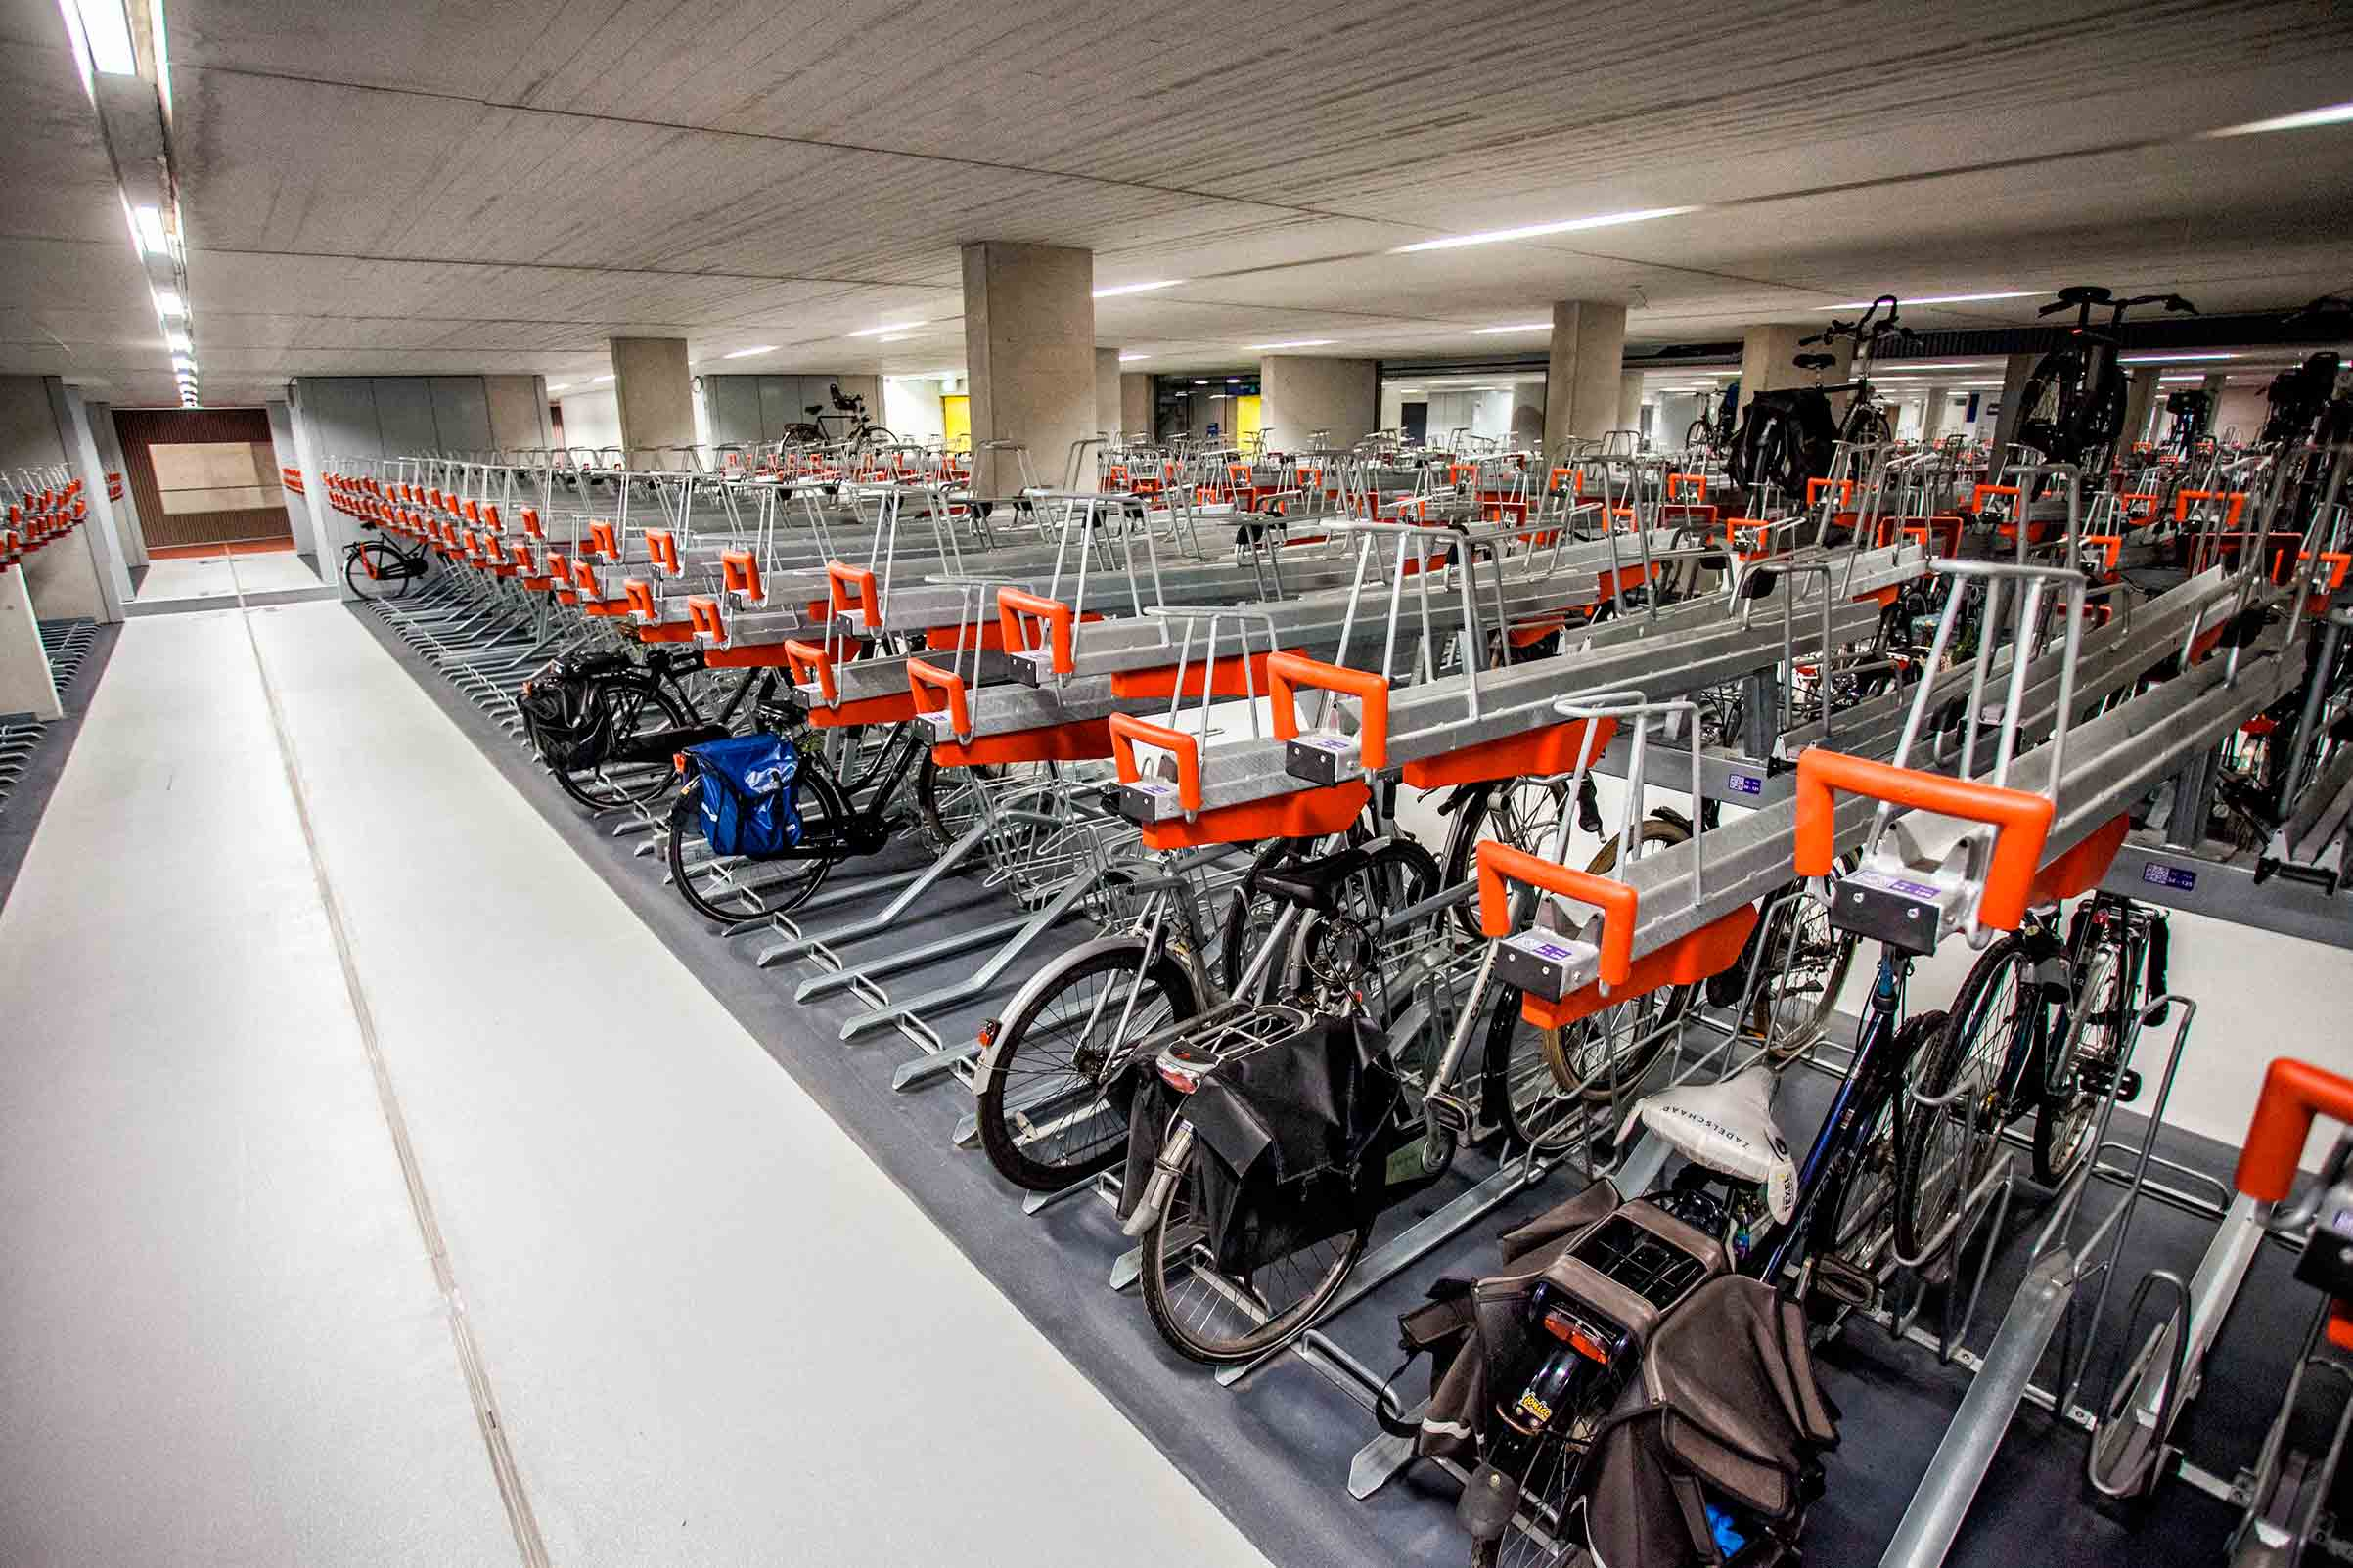 An interior view of part of the largest bicycle storage in Europe, at the Utrecht Central Station in Utrech, Netherlands, Aug. 7. The storage has a capacity of 6,000 bicycles and will be expanded to accomodate 12,500 at the end of 2018.